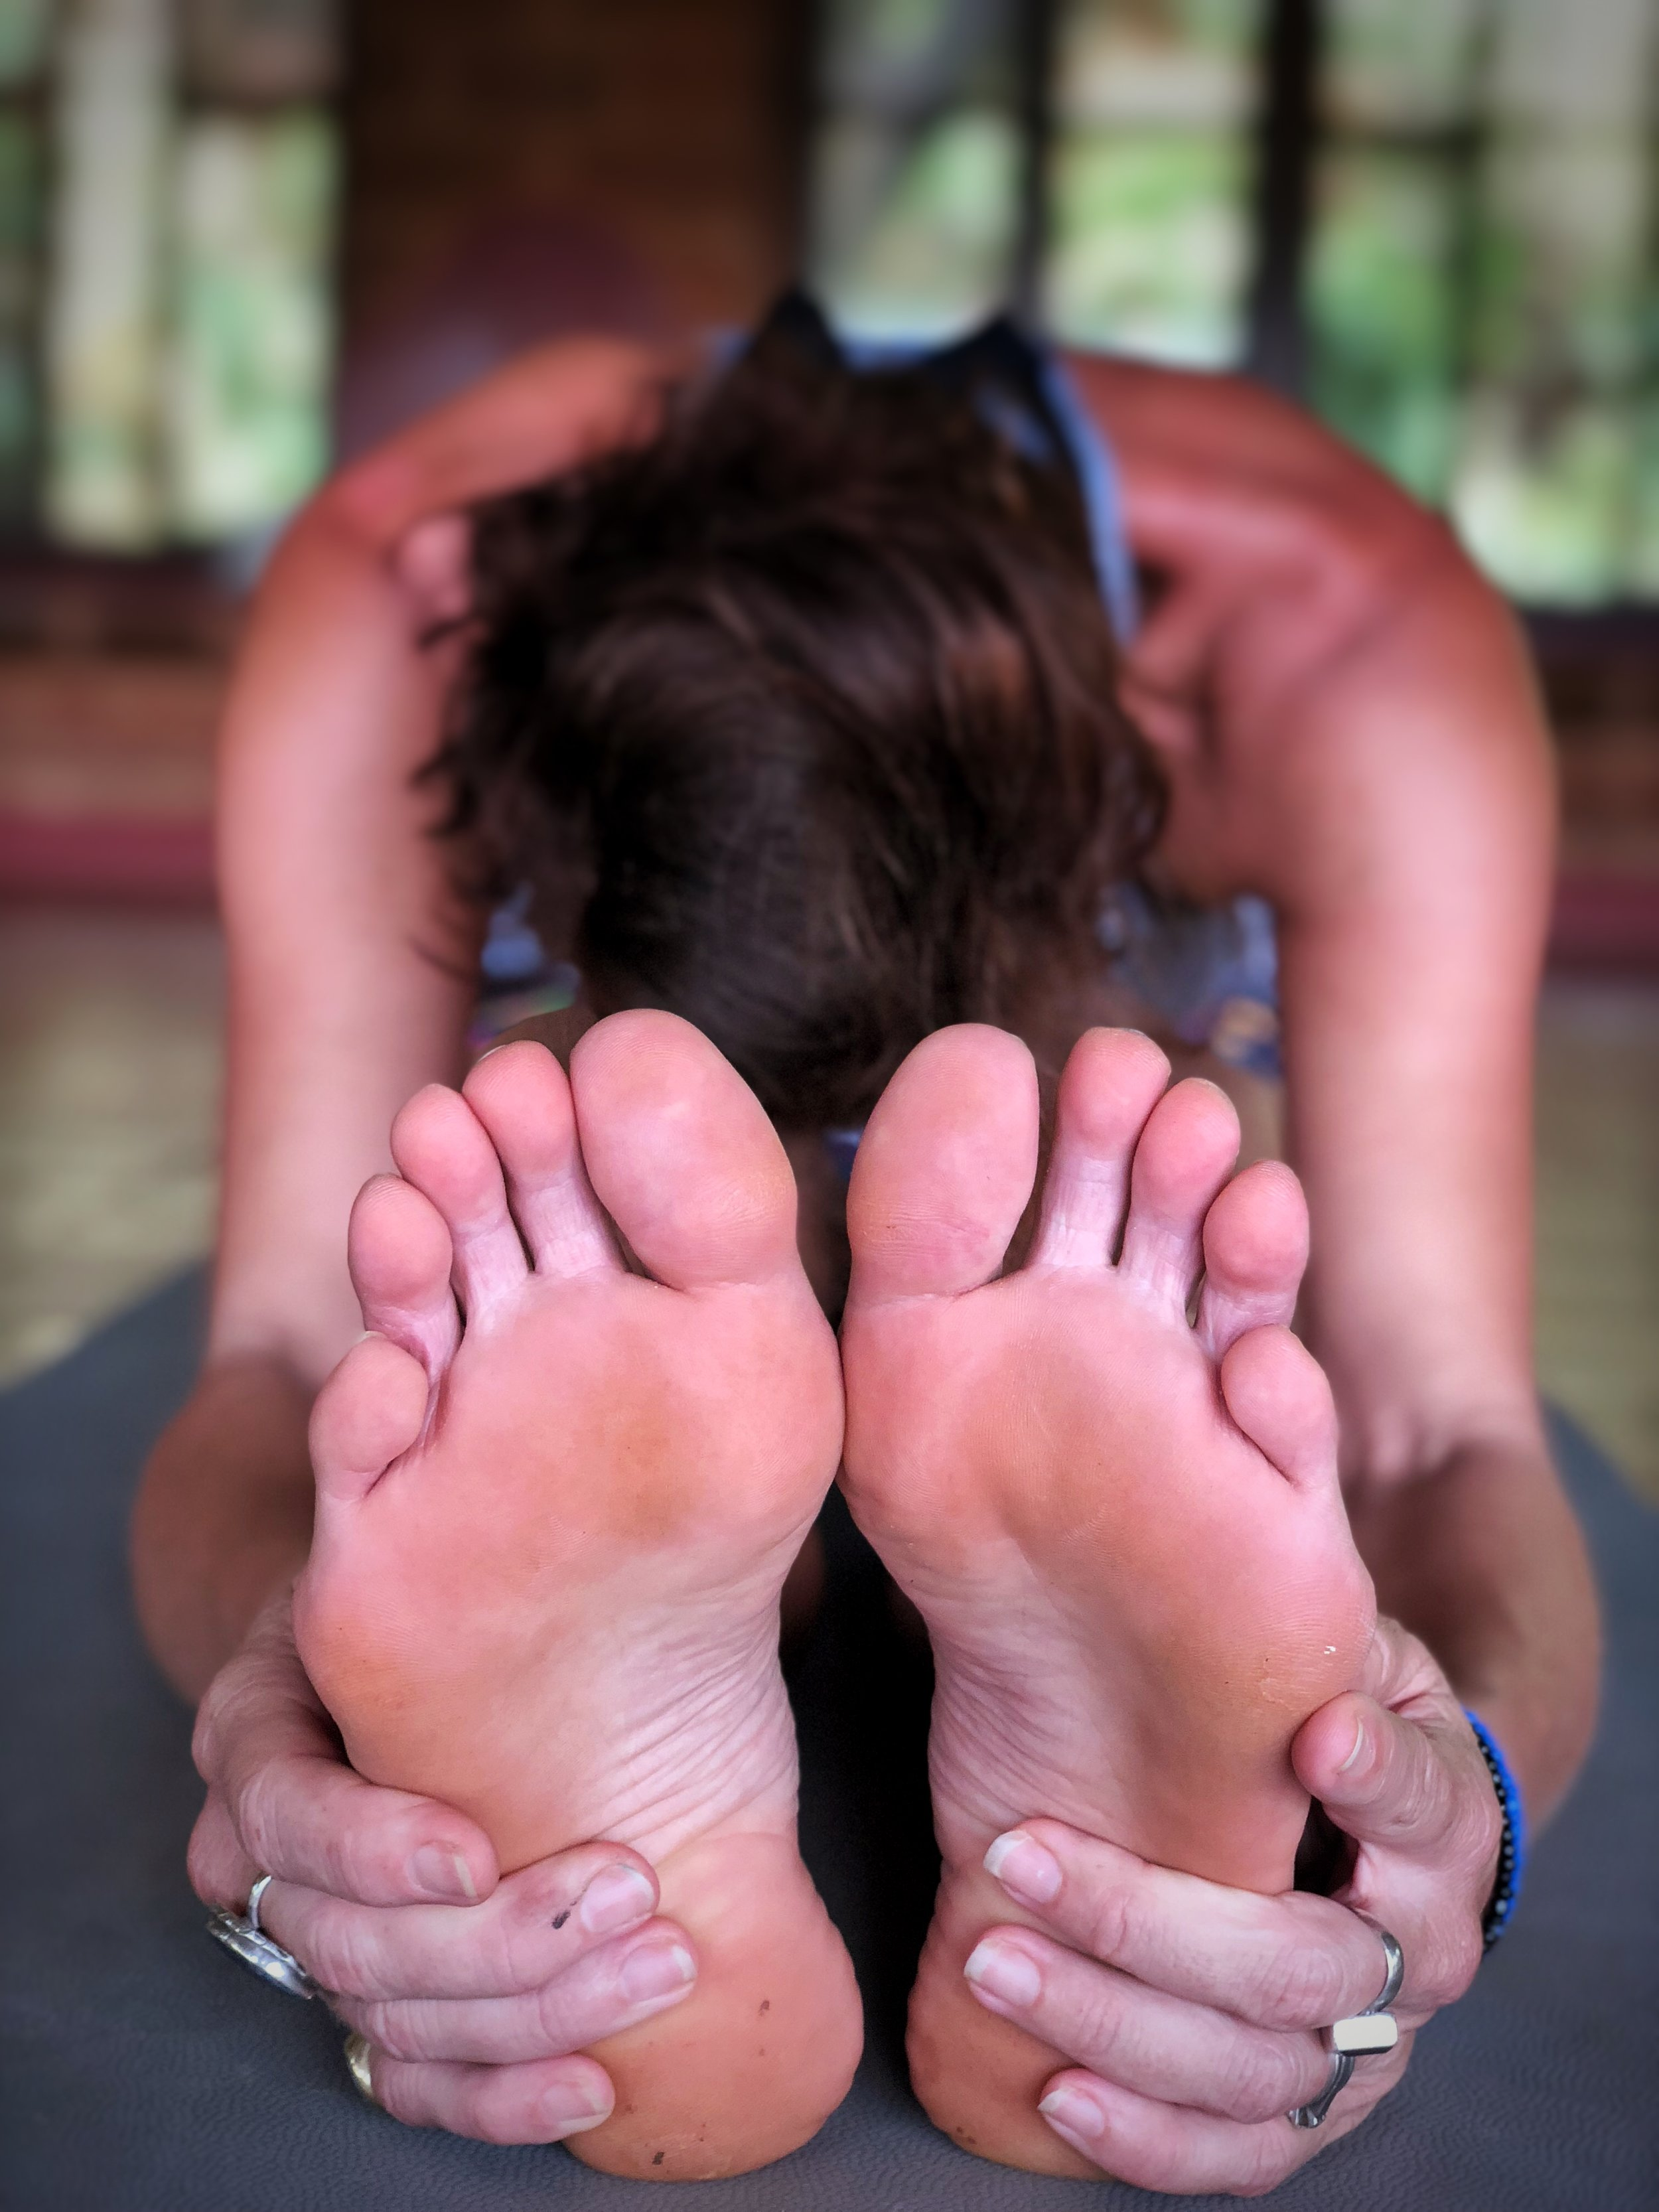 paschimottasana yoga pose (head to knee pose)